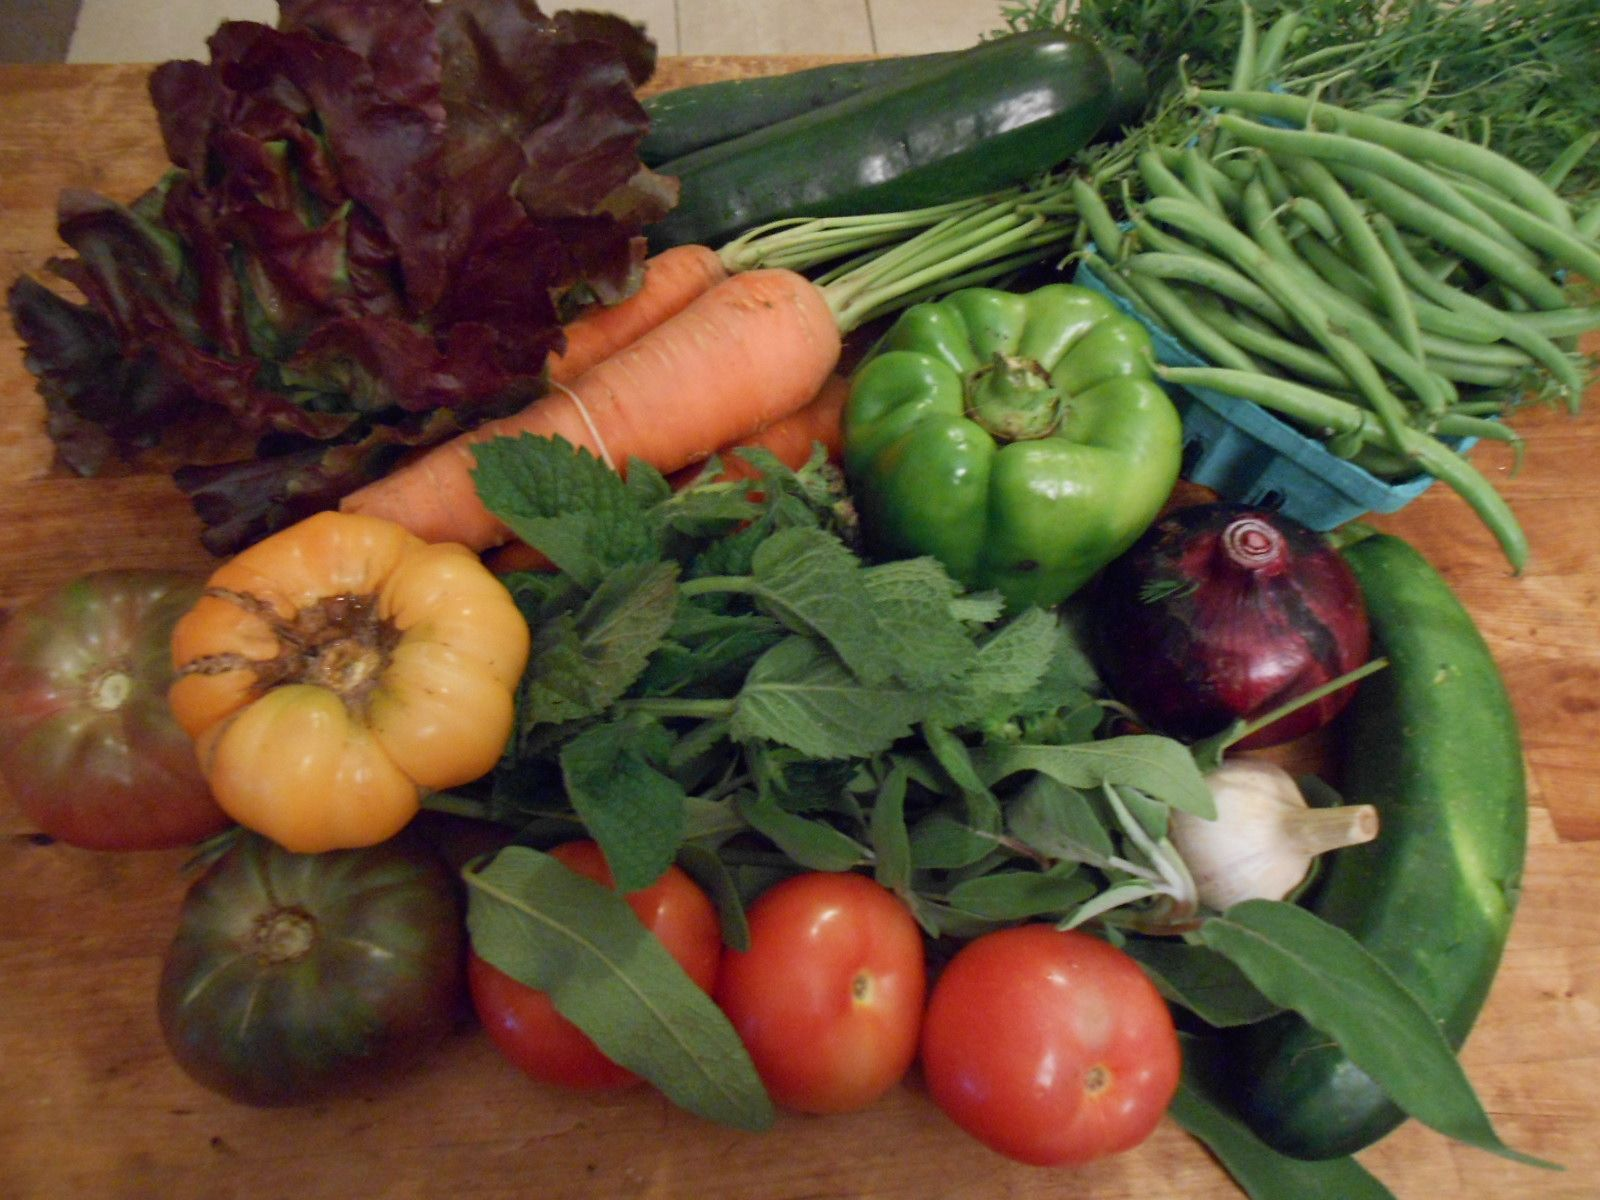 July 23, 2014: red butter lettuce, zucchinis, a cucumber, carrots with tops, green beans, a huge bell pepper, a red onion, a garlic, six gorgeous heirloom tomatoes, and big bunches of sage and mint. I'm full up on pesto, infused oil, and compound butter, so these herbs will become teas and syrups. The pepper will go to a work friend, since I'm allergic.